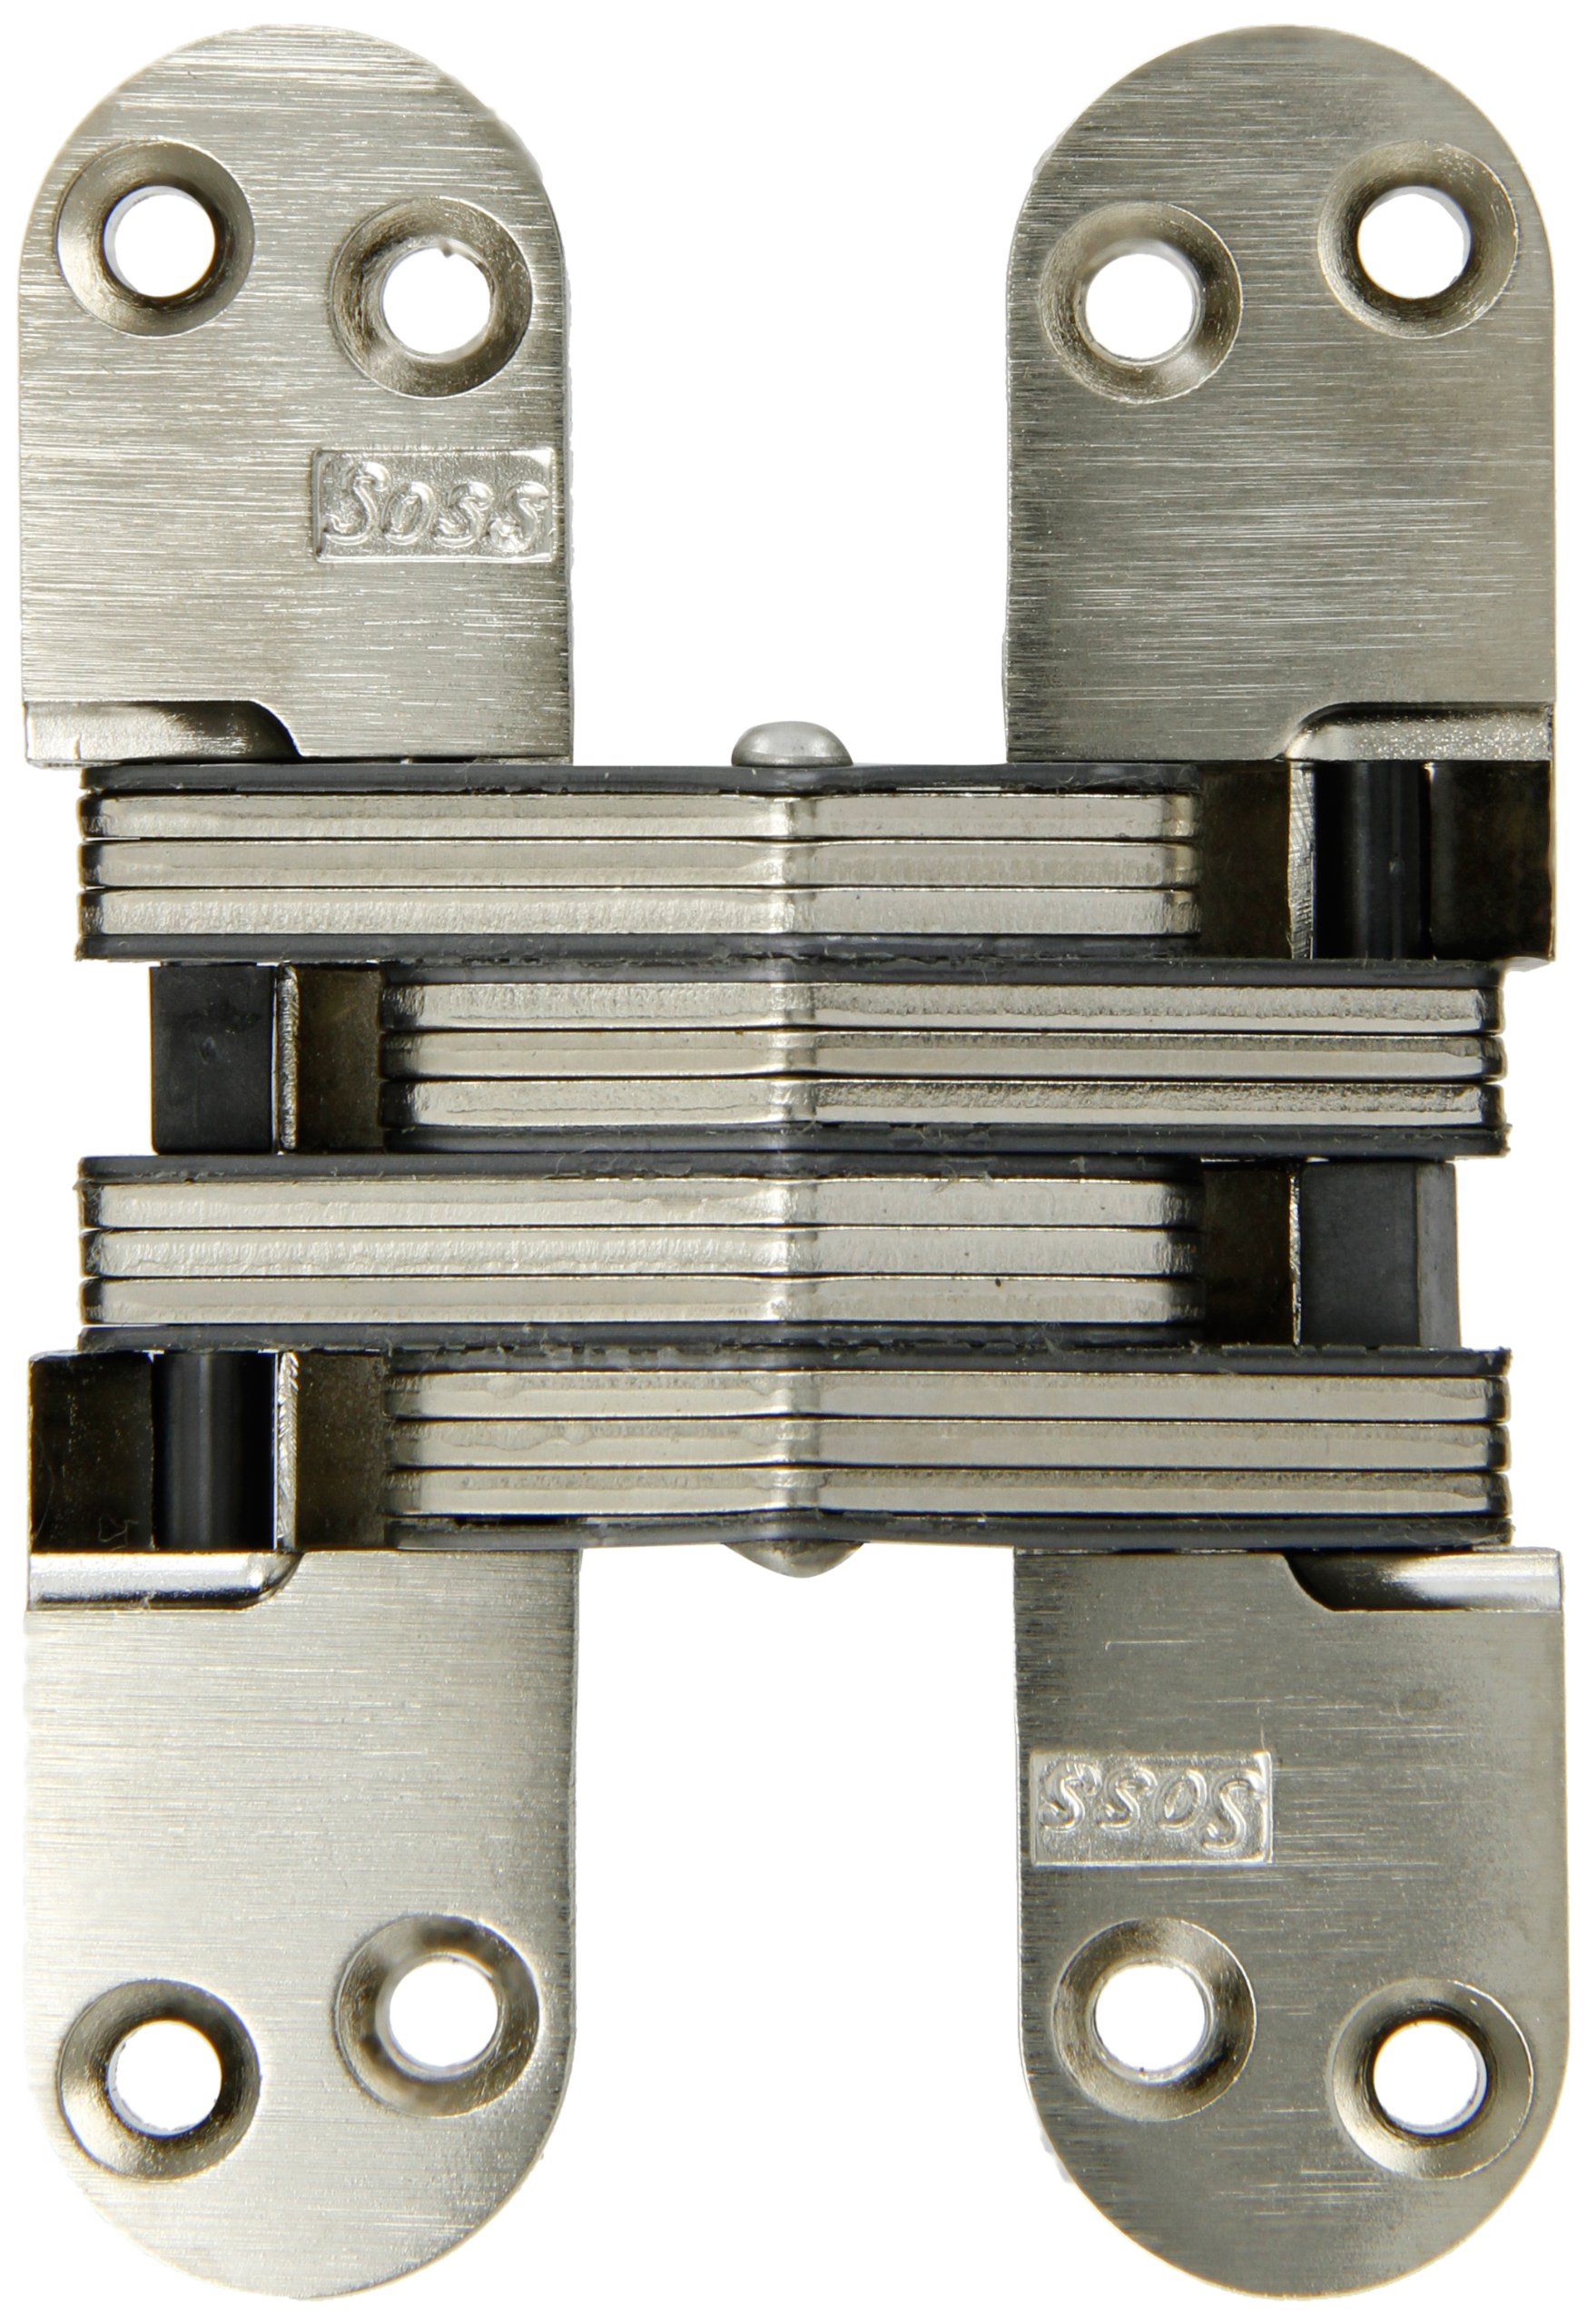 SOSS Mortise Mount Invisible Hinge with 8 Holes, Zinc, Satin Nickel Finish, 4-5/8'' Leaf Height, 1-1/8'' Leaf Width, 1-41/64'' Leaf Thickness, 10 x 1-1/2'' Screw Size